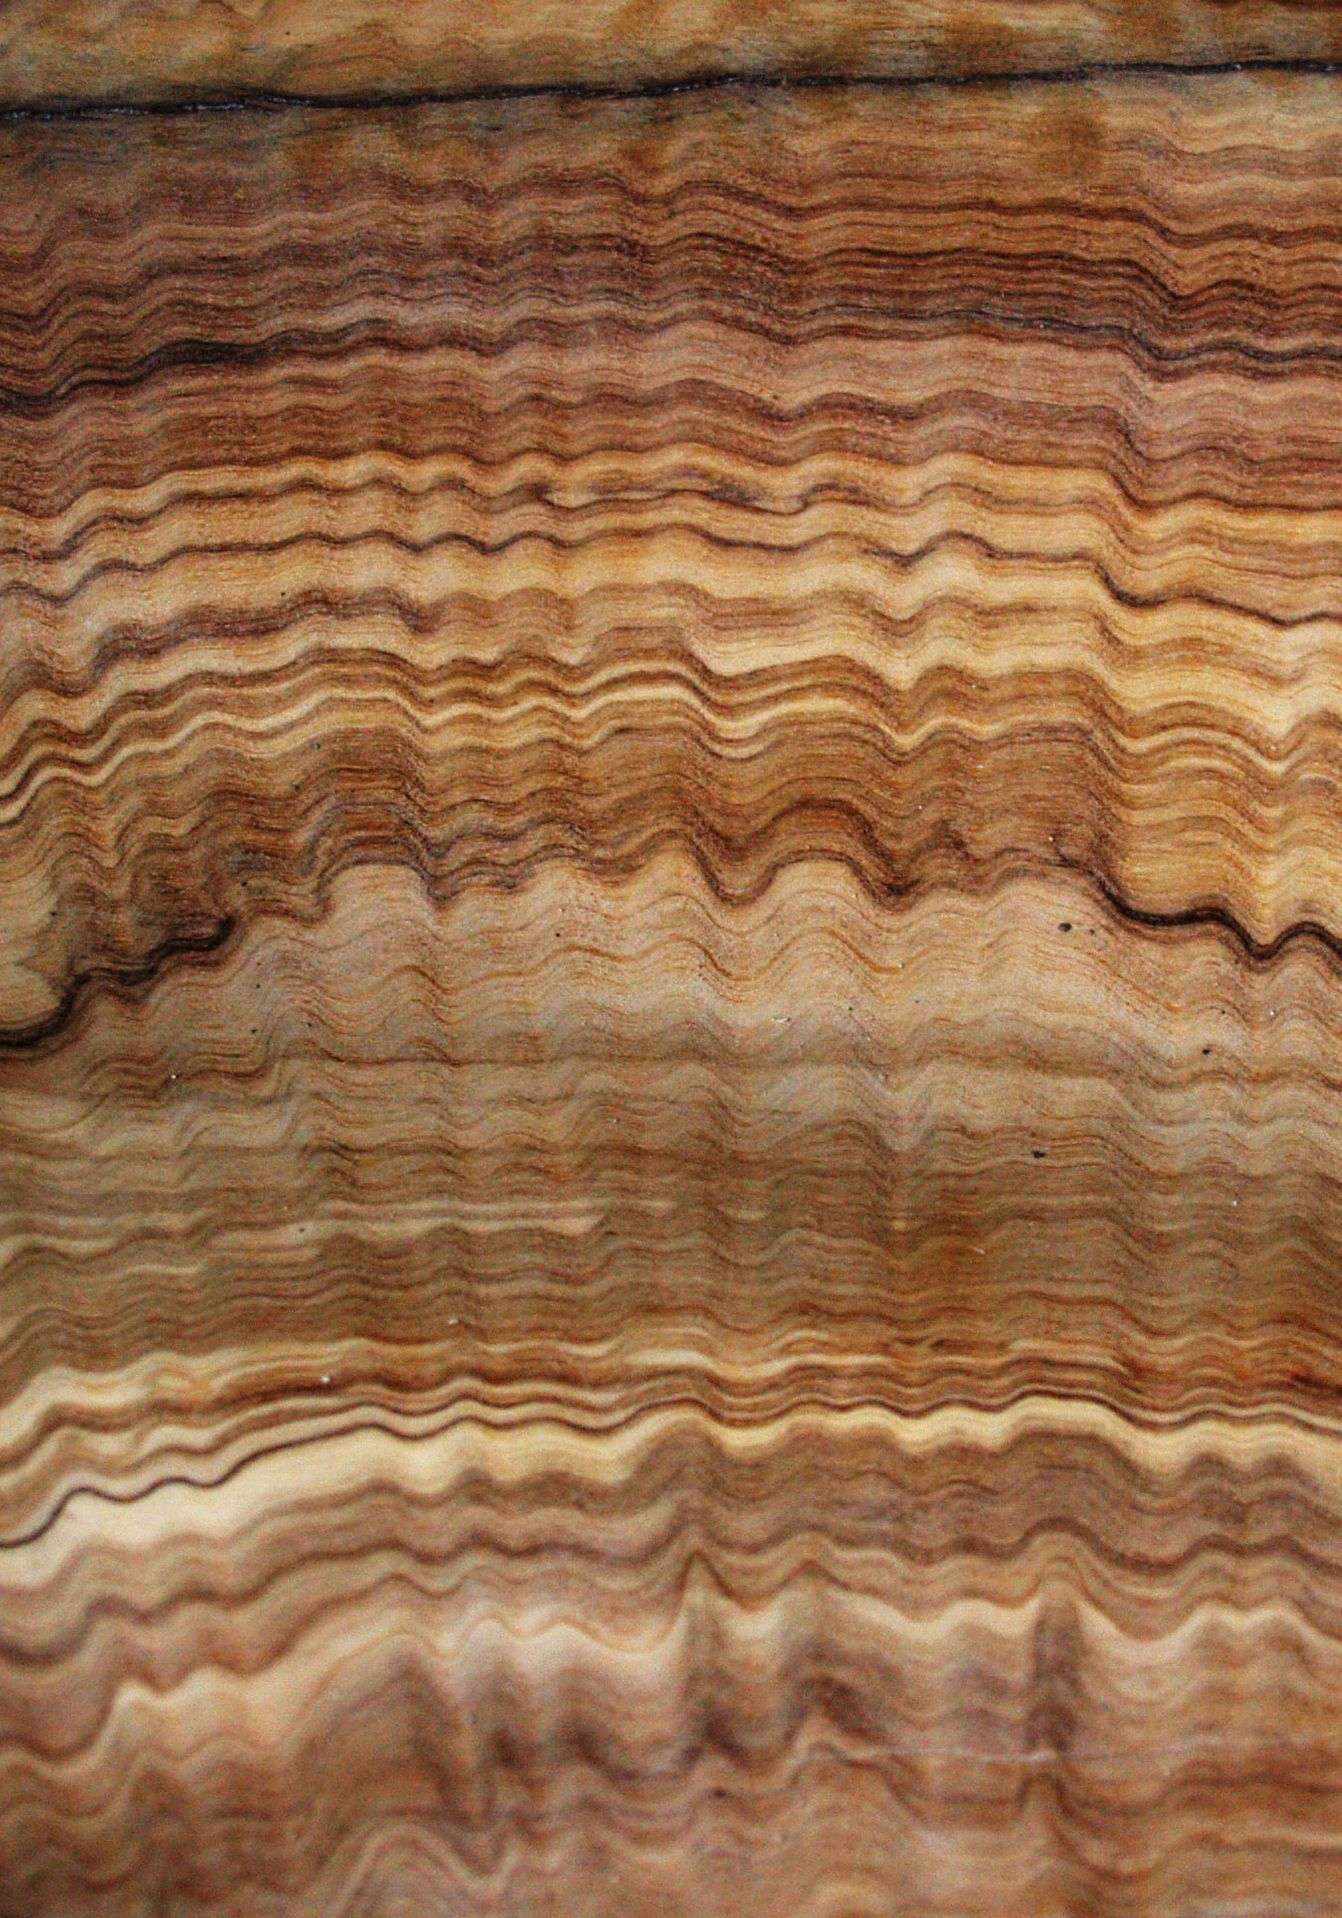 Olive Wood The Most Commonly Used Sort Of Wood For